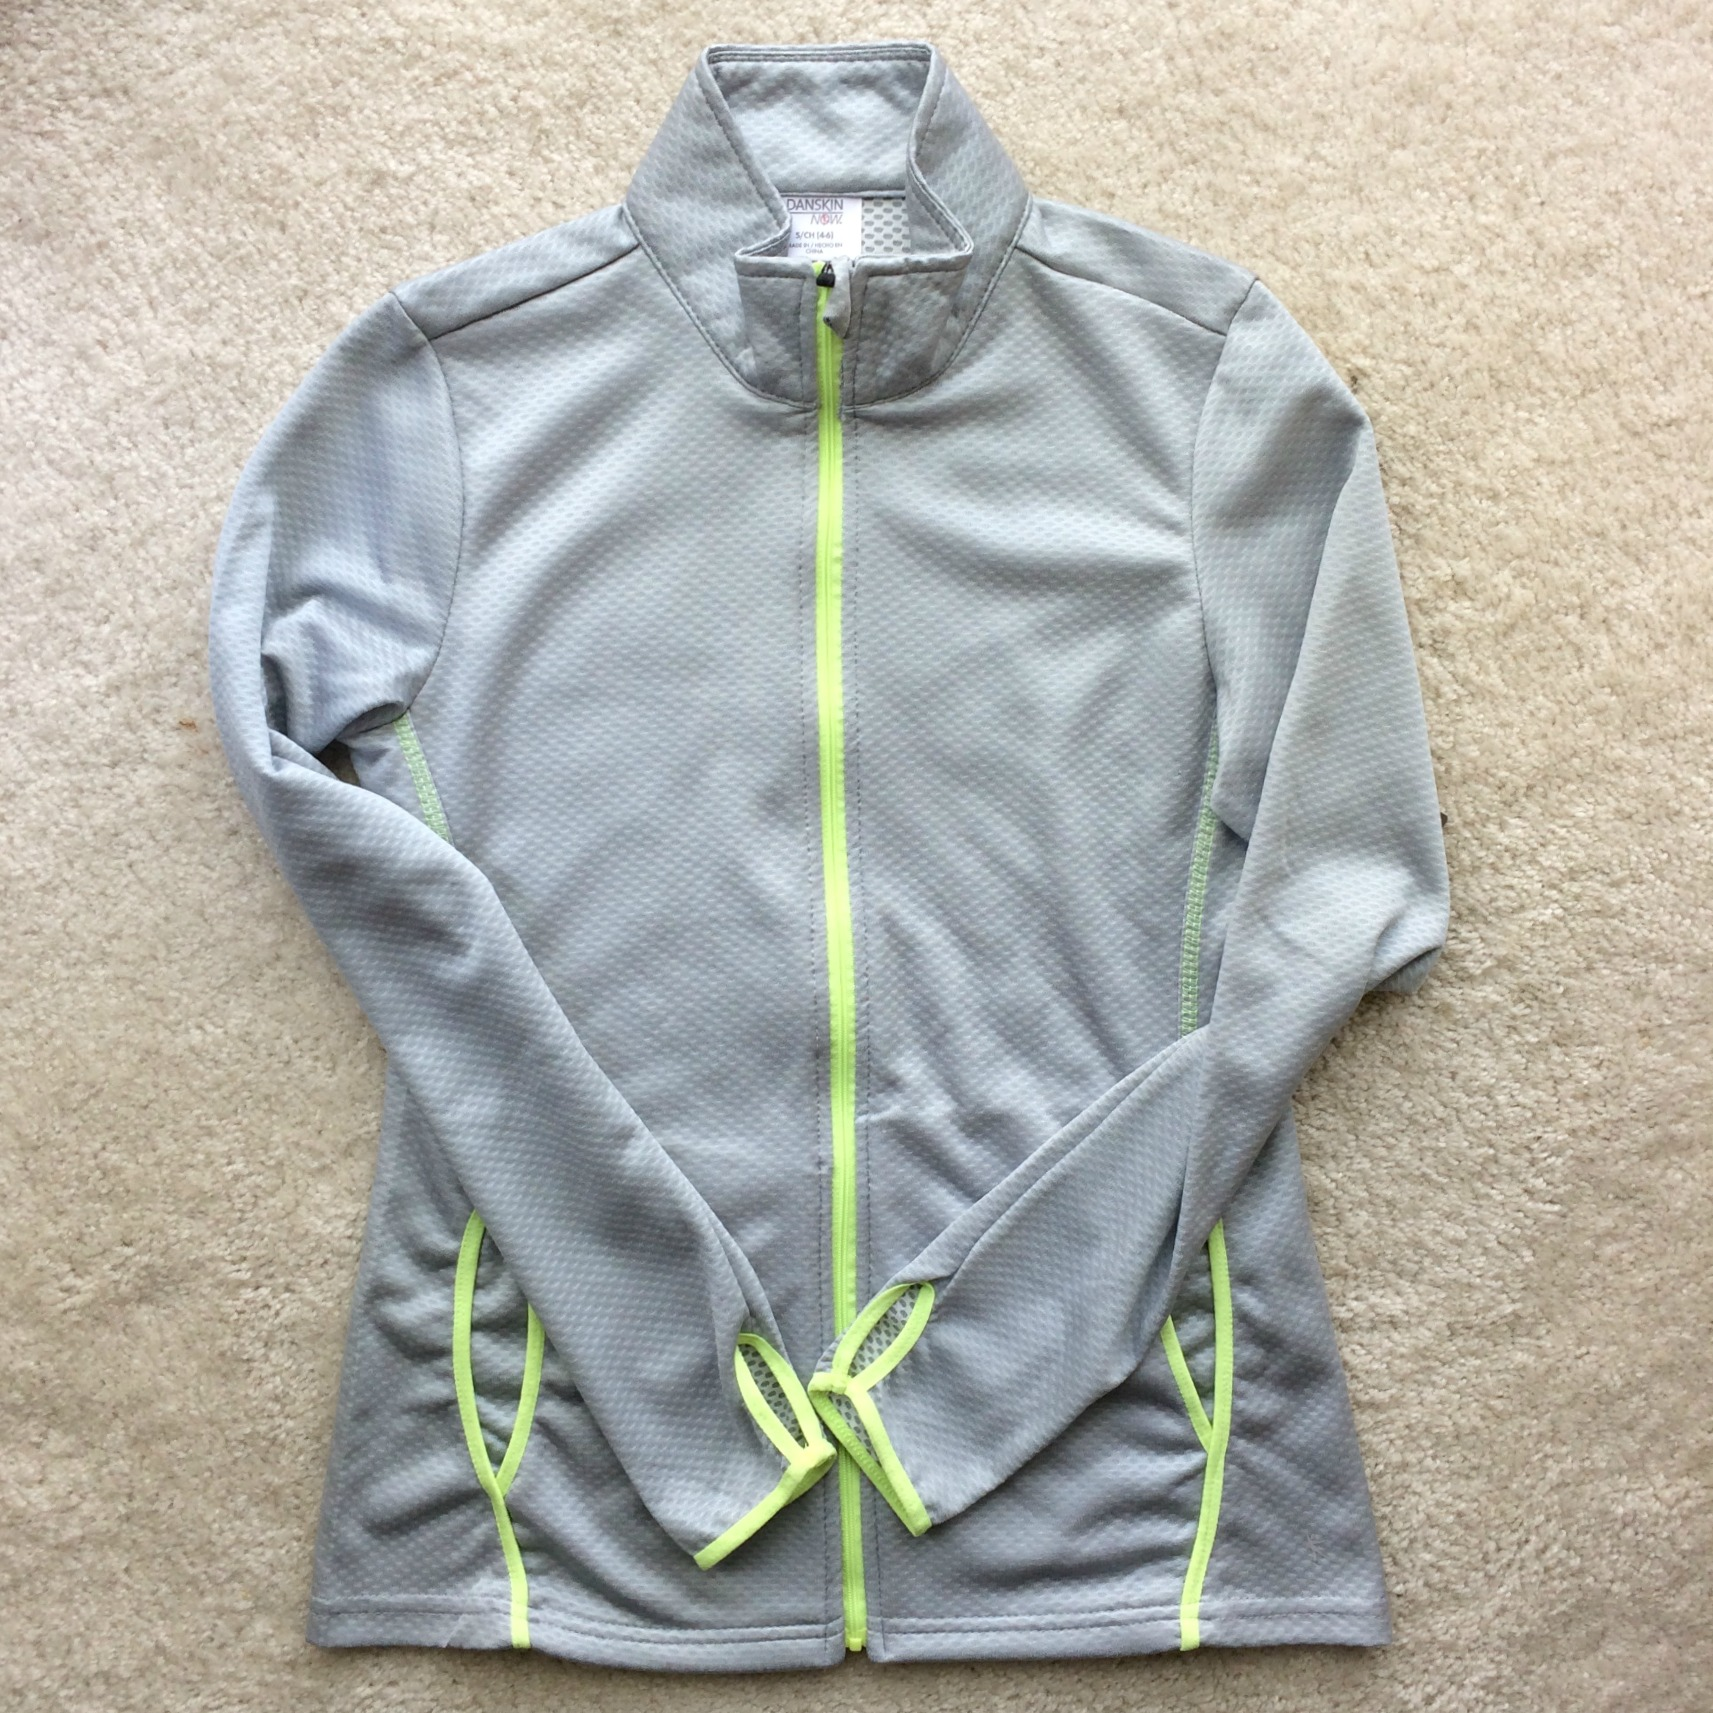 danskin zip up jacket